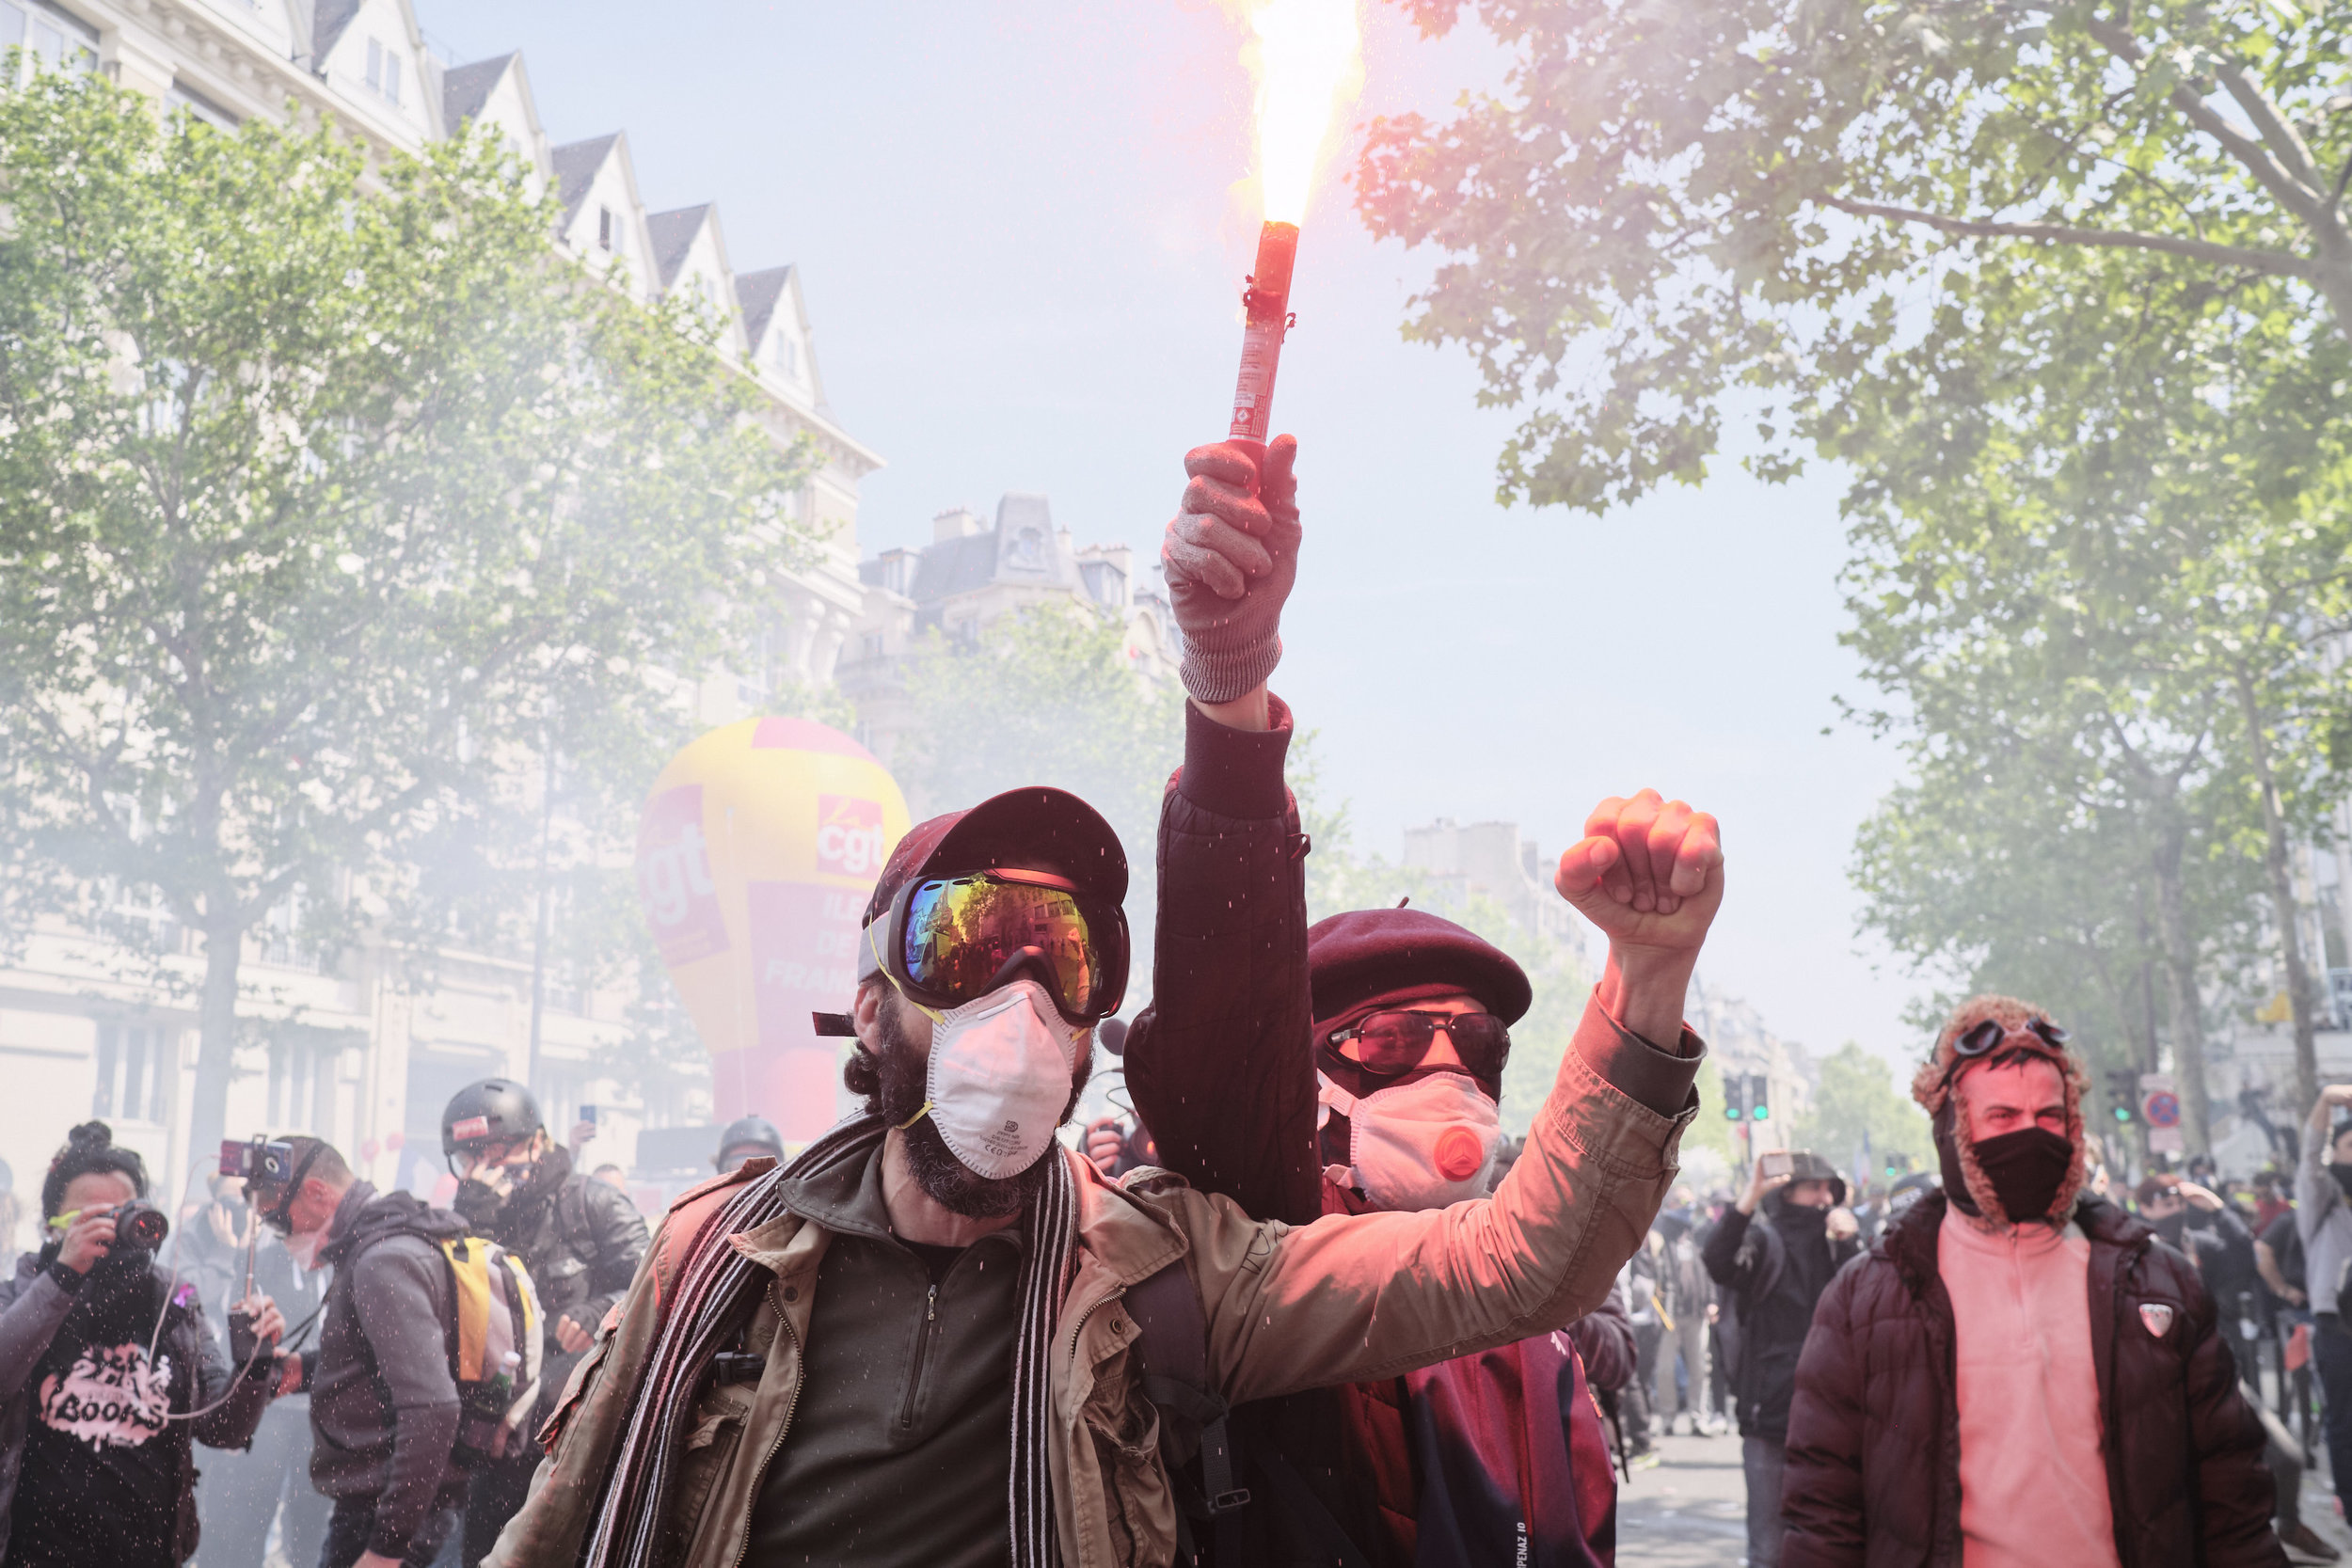 Protest participants celebrating with light flairs after successfully withstanding a crowd control manoeuvre by the police at Boulevard du Montparnasse.